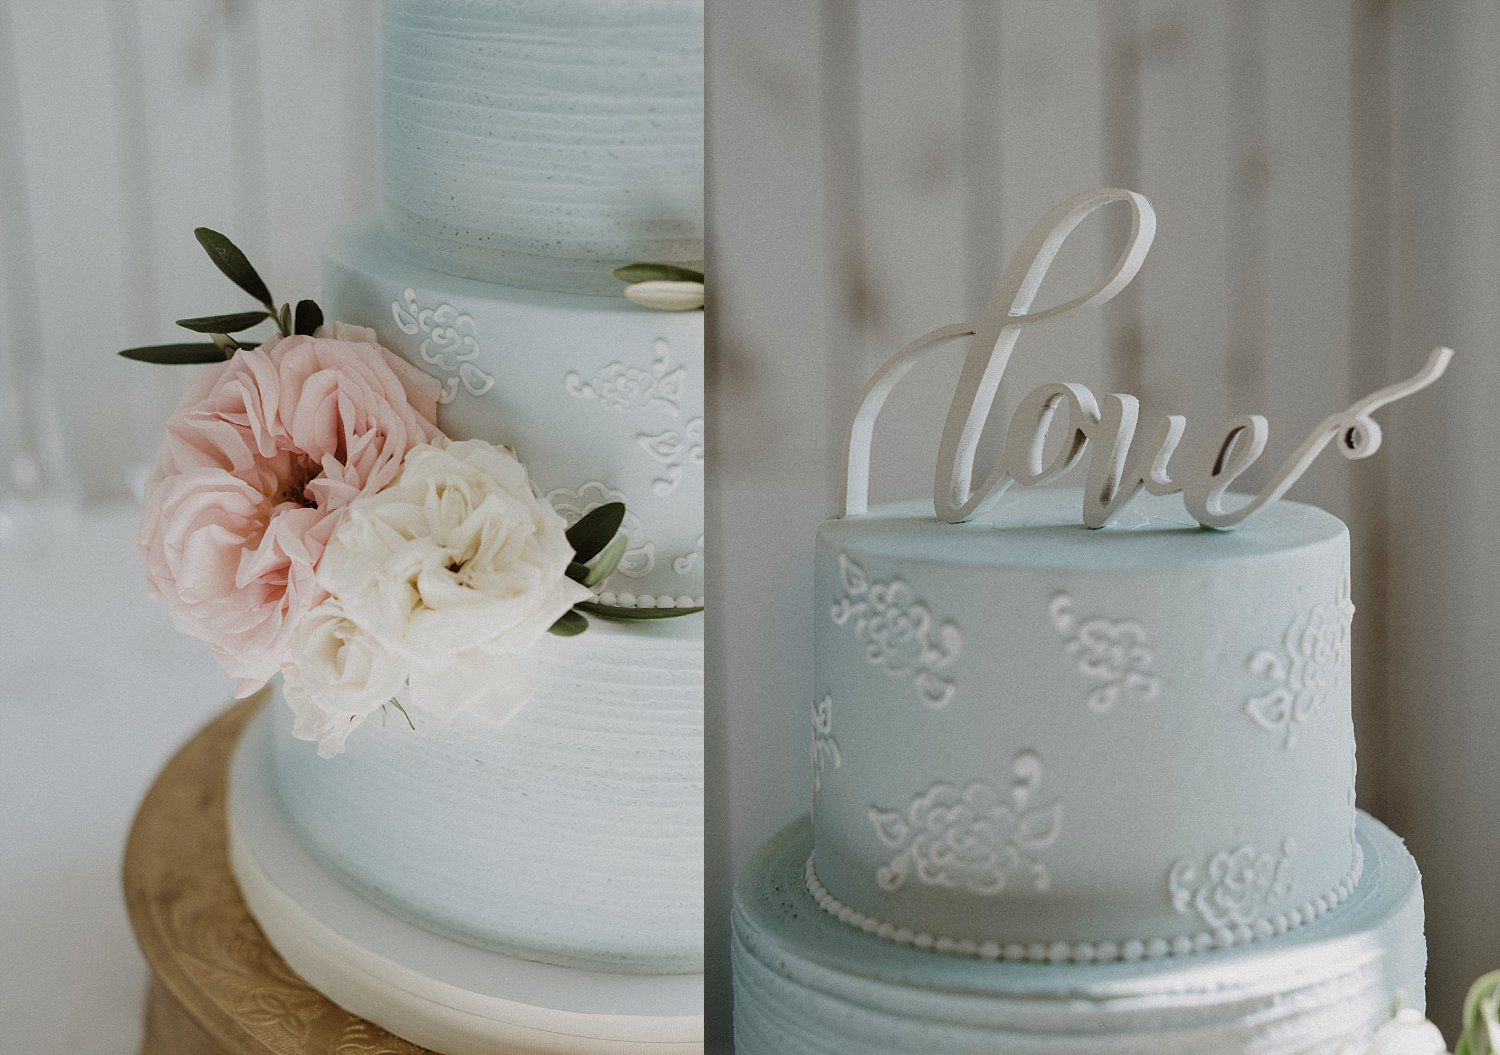 Blue and white real flowers on wedding cake